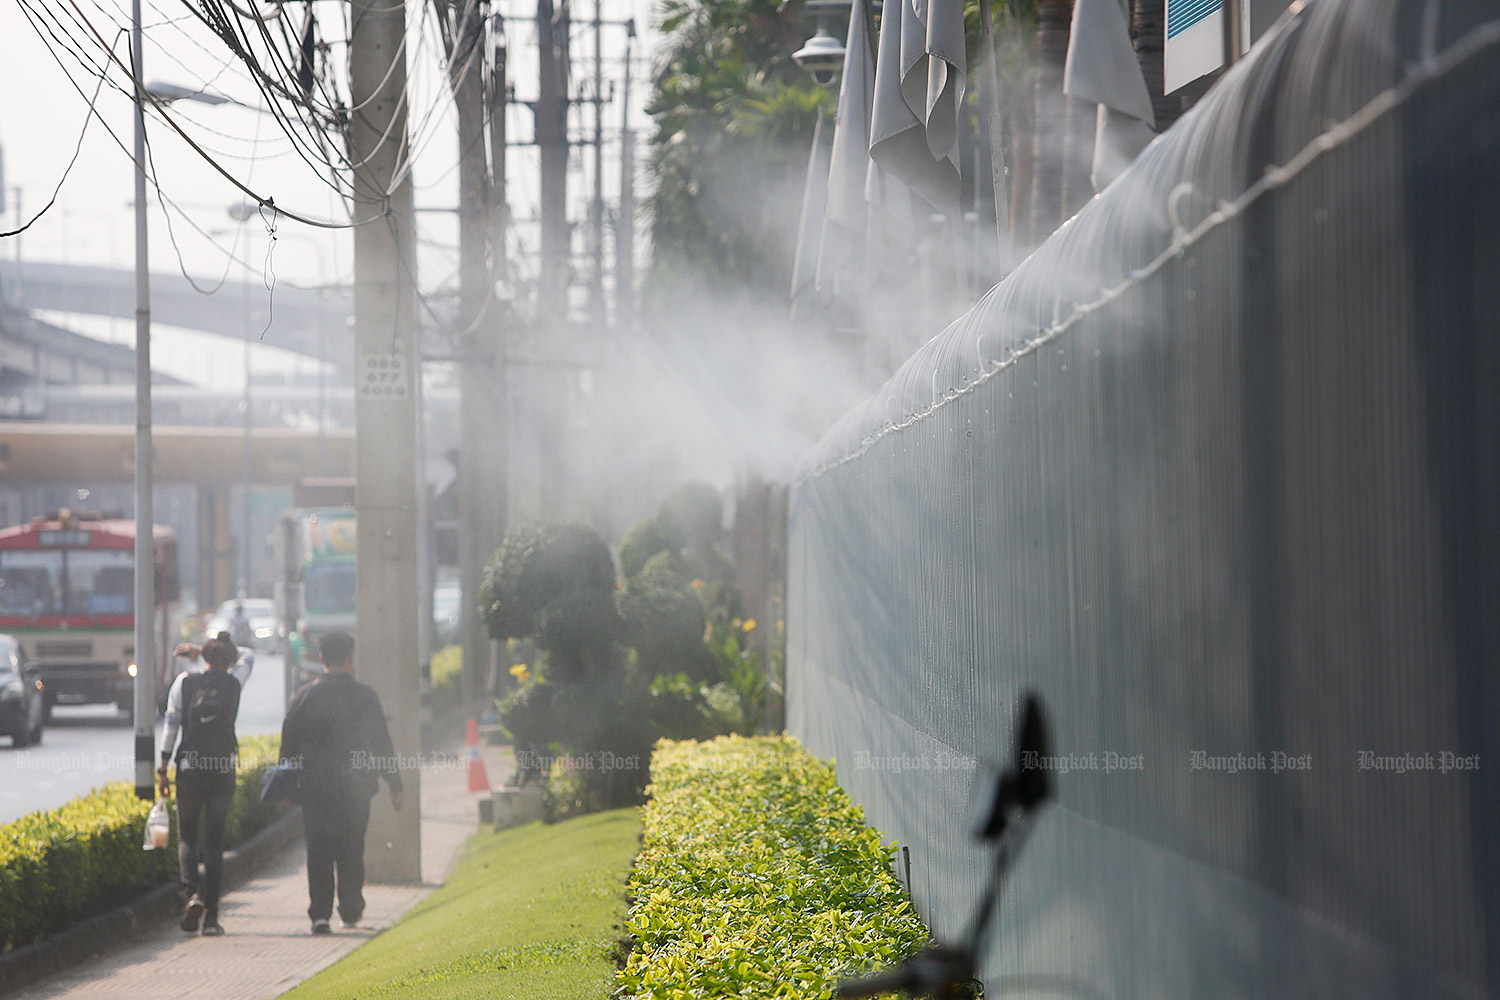 Mist is released at PTT's head office to ease dust pollution in Bangkok. (Photo by Pattarapong Chatpattarasill)